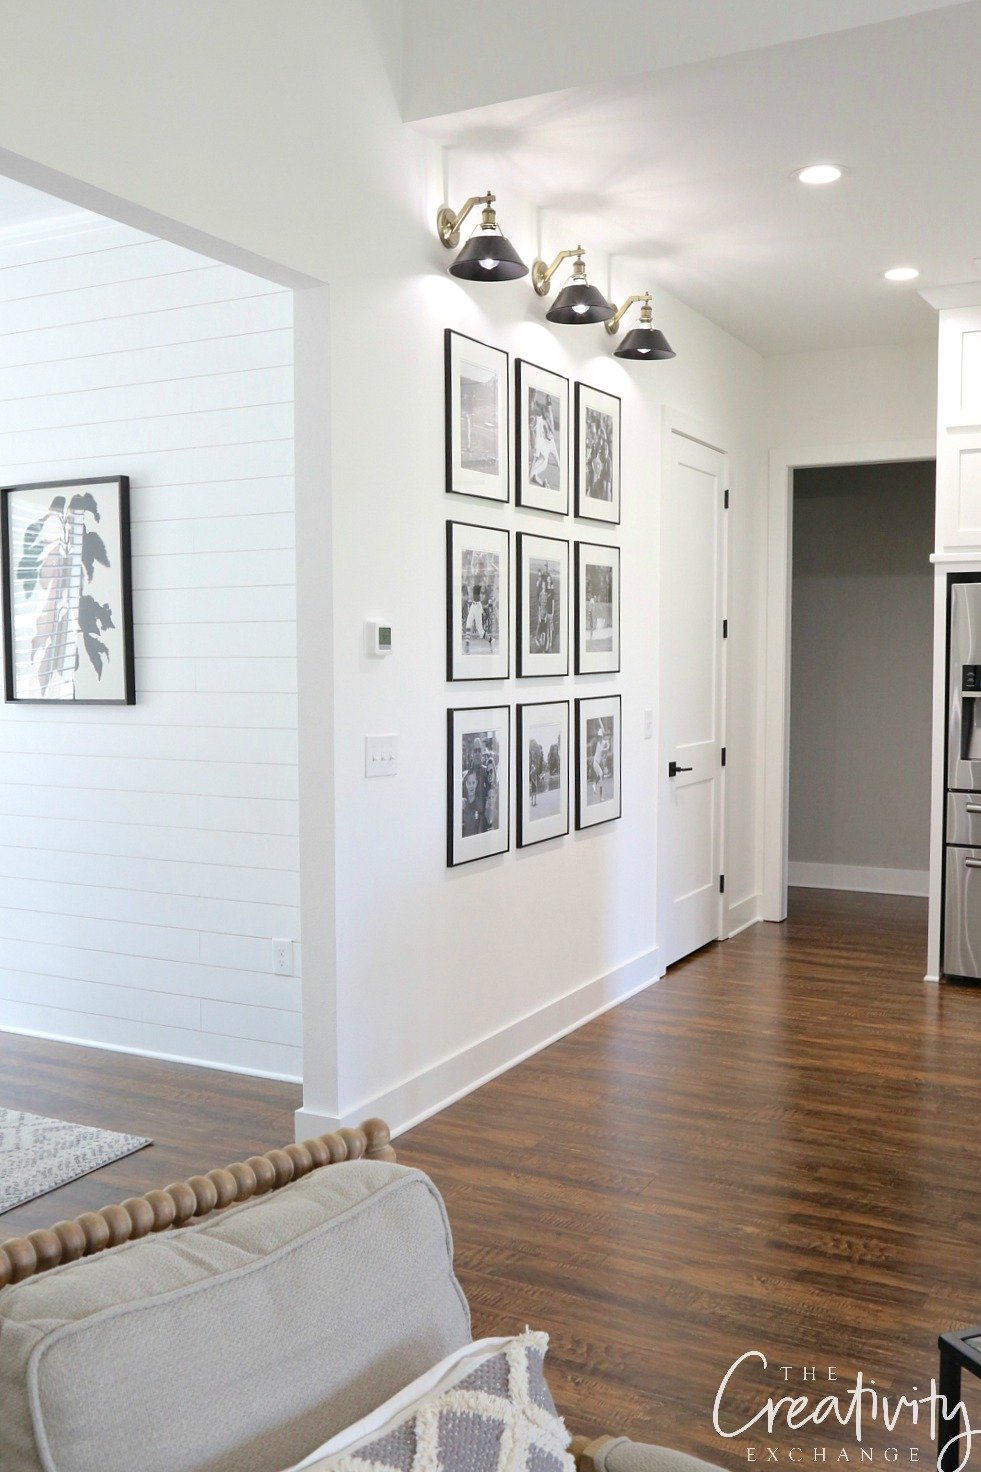 The easiest gallery wall shortcuts